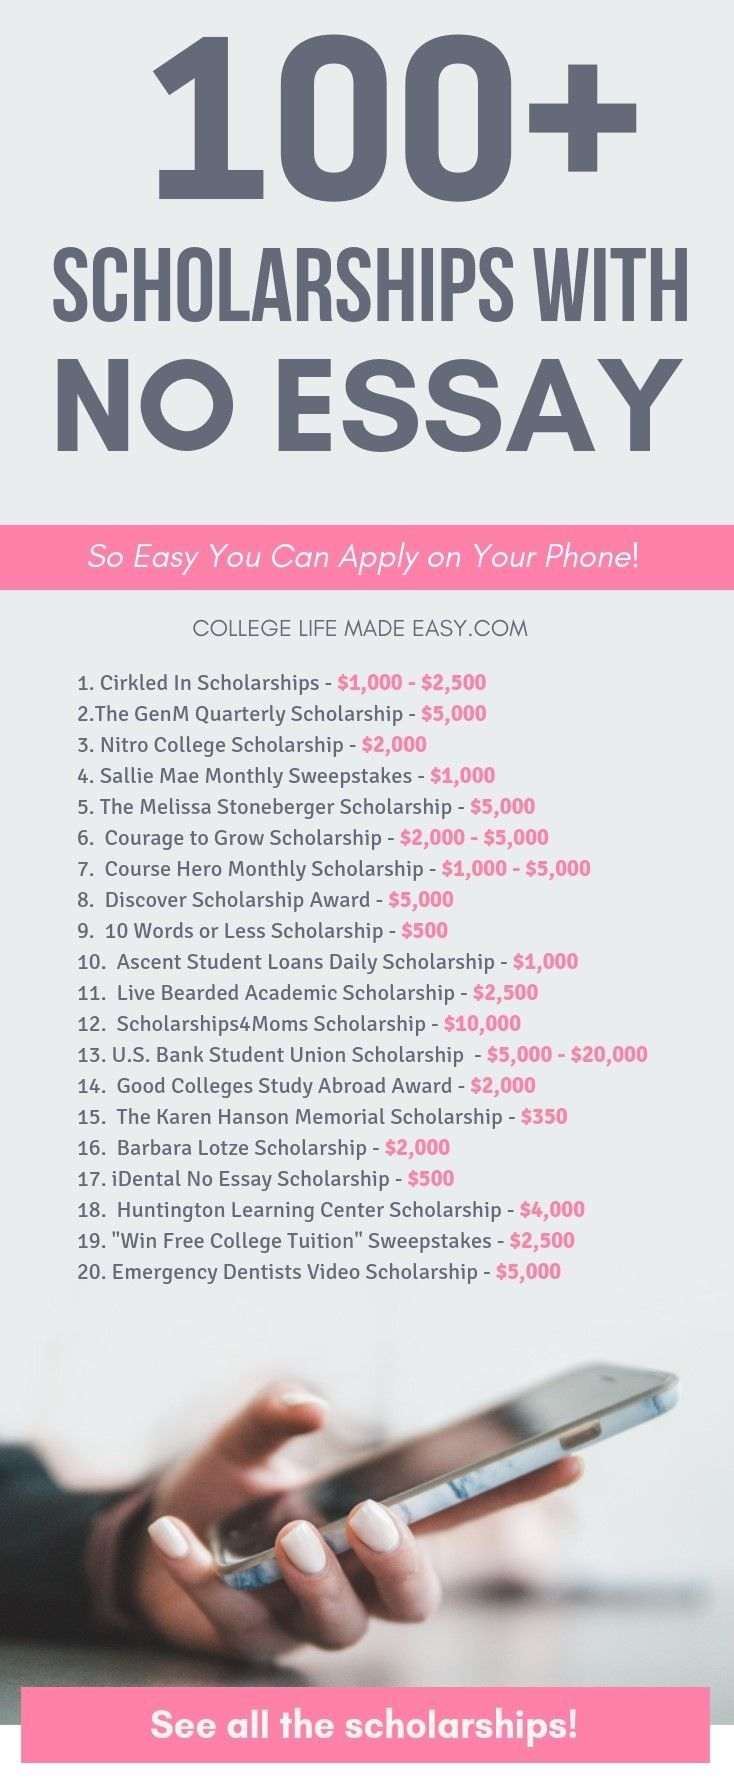 Scholarships for college students 2013 no essay